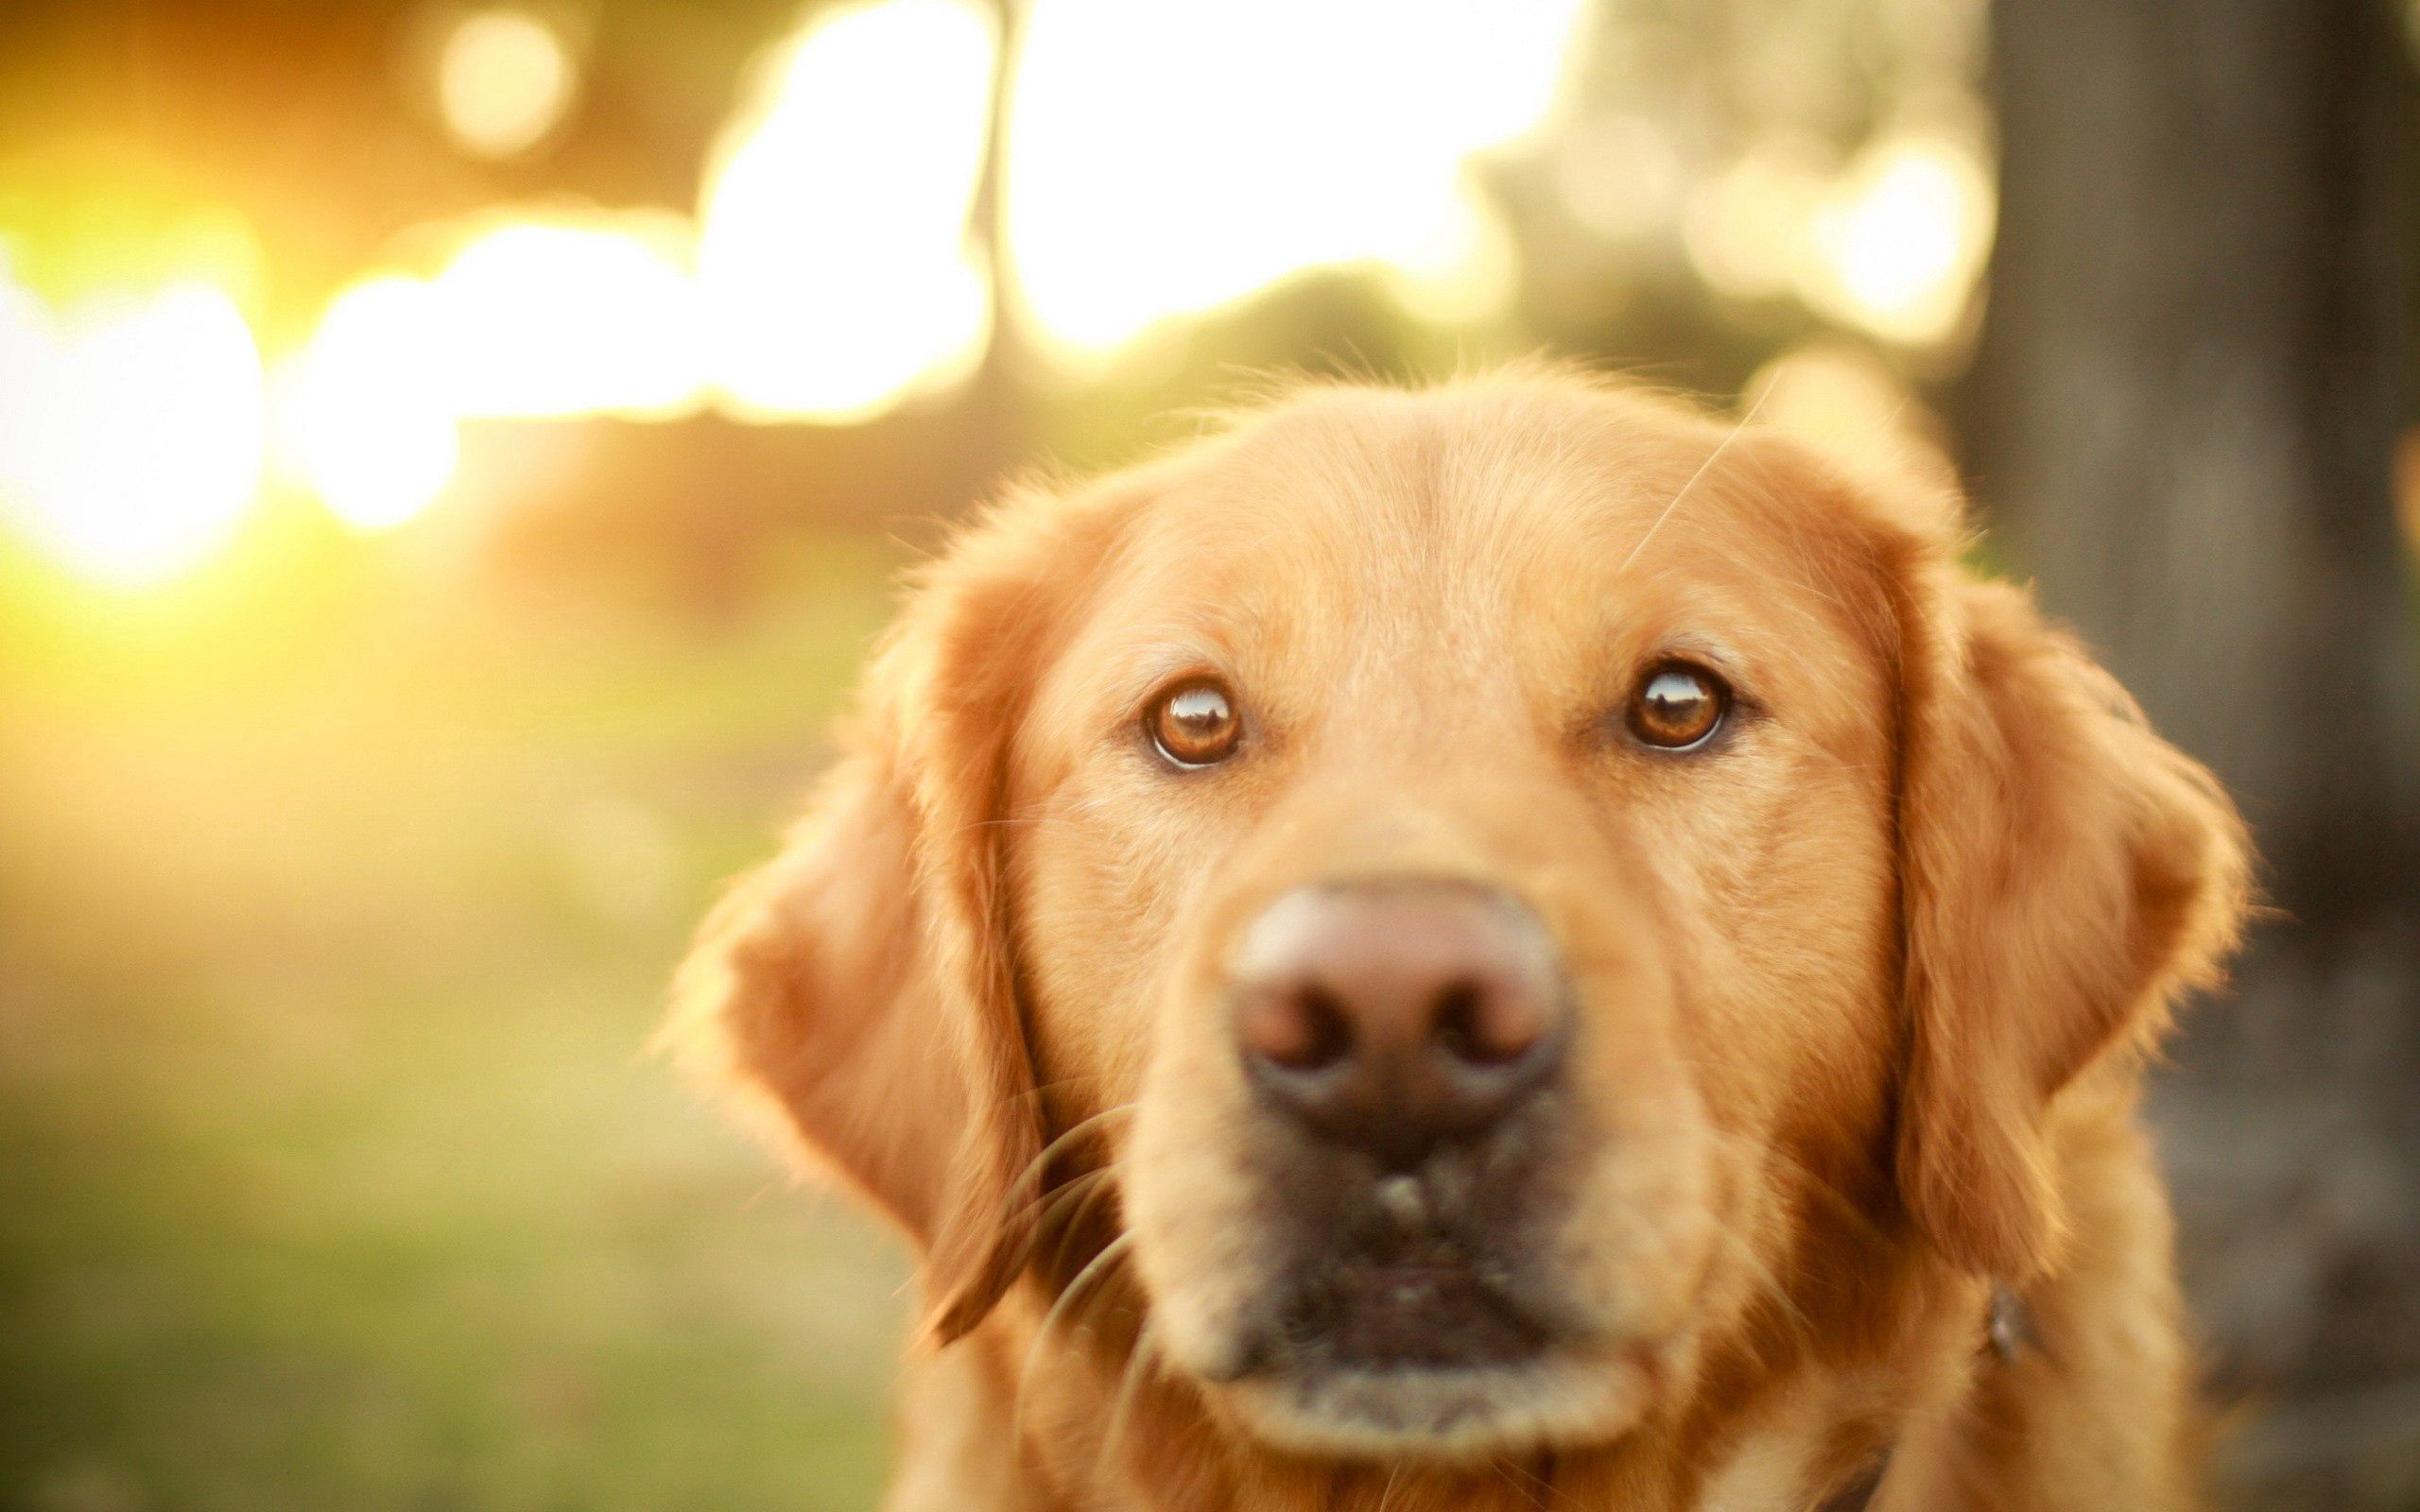 85315 download wallpaper Animals, Dog, Muzzle, Sight, Opinion, Fidelity, Sunlight screensavers and pictures for free